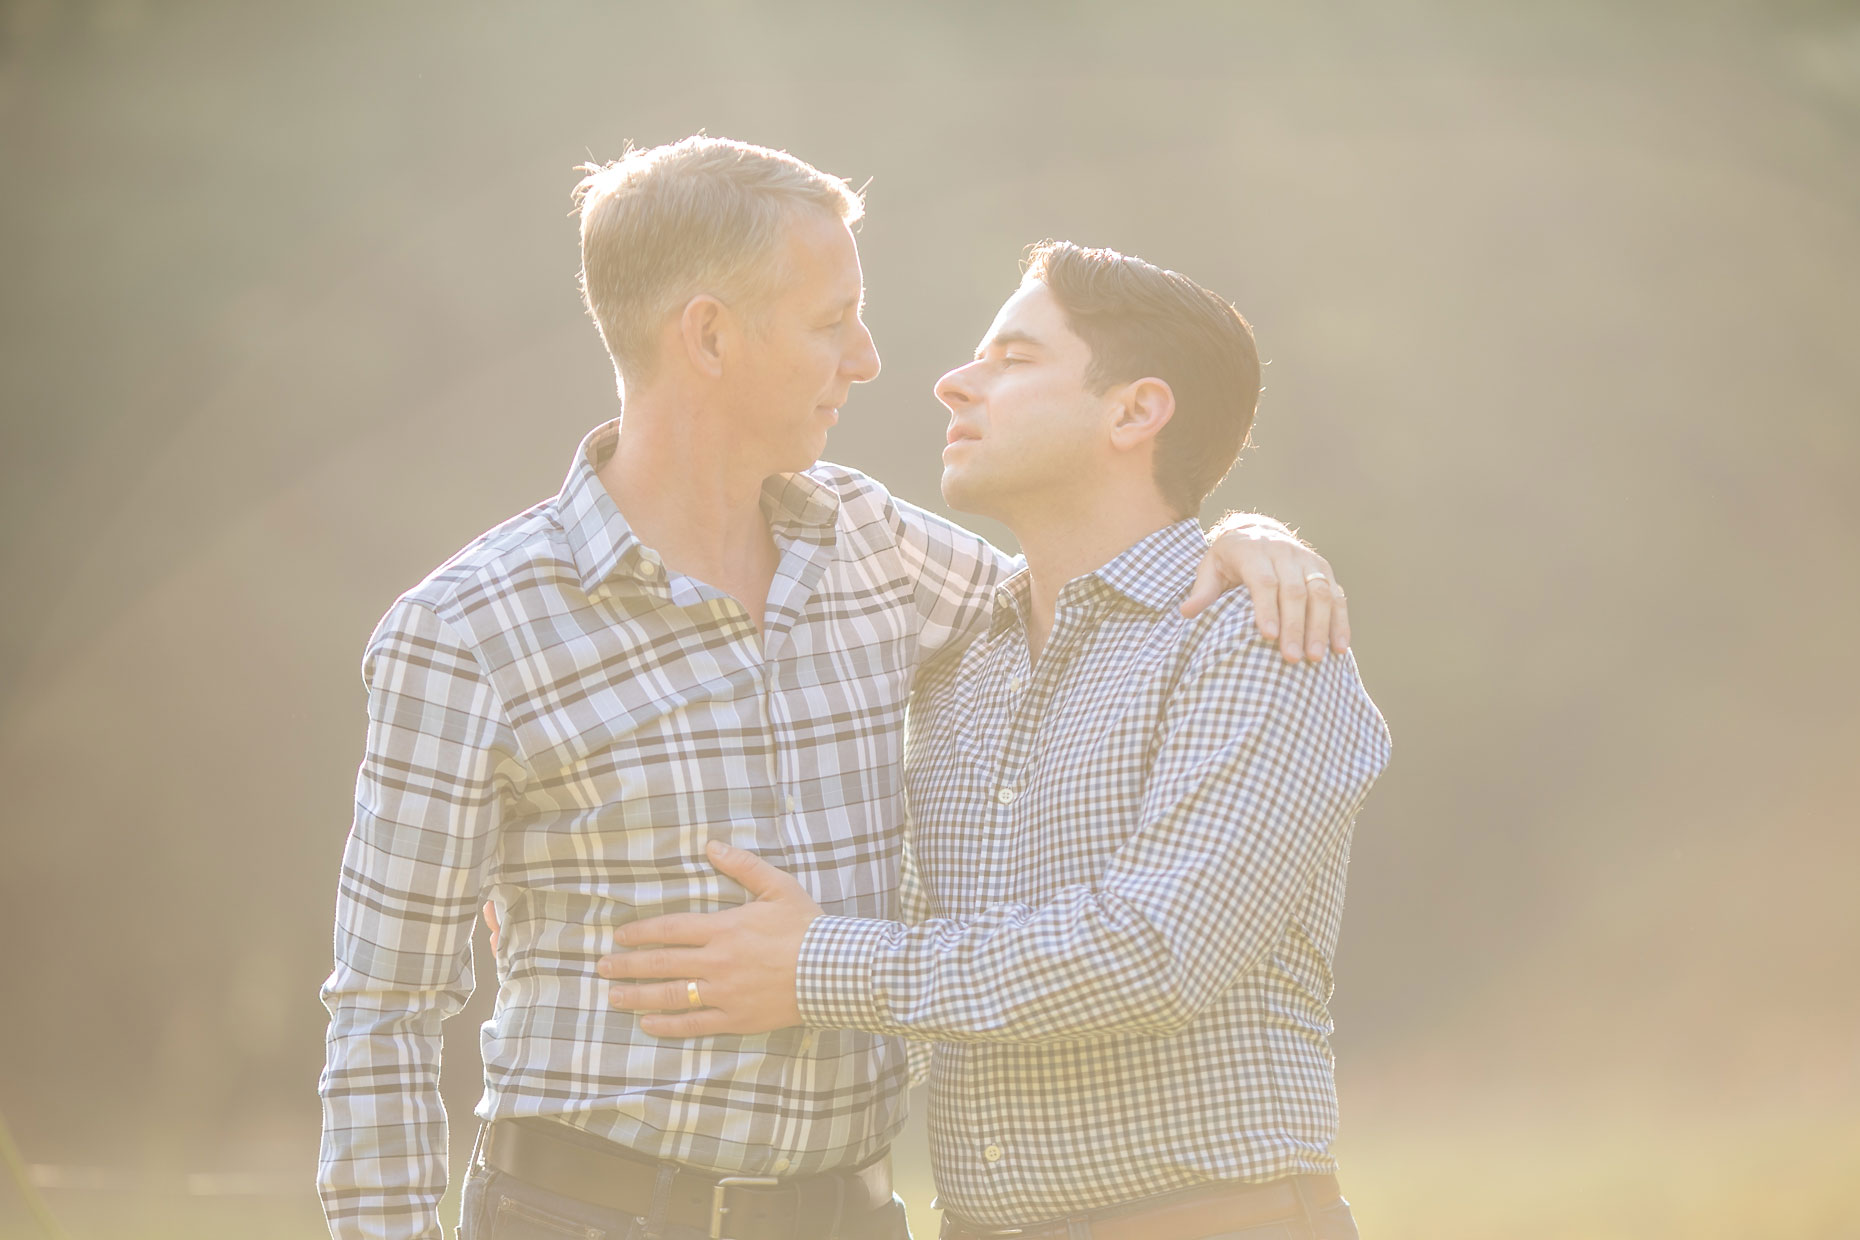 Yosemite gay couple photography session.